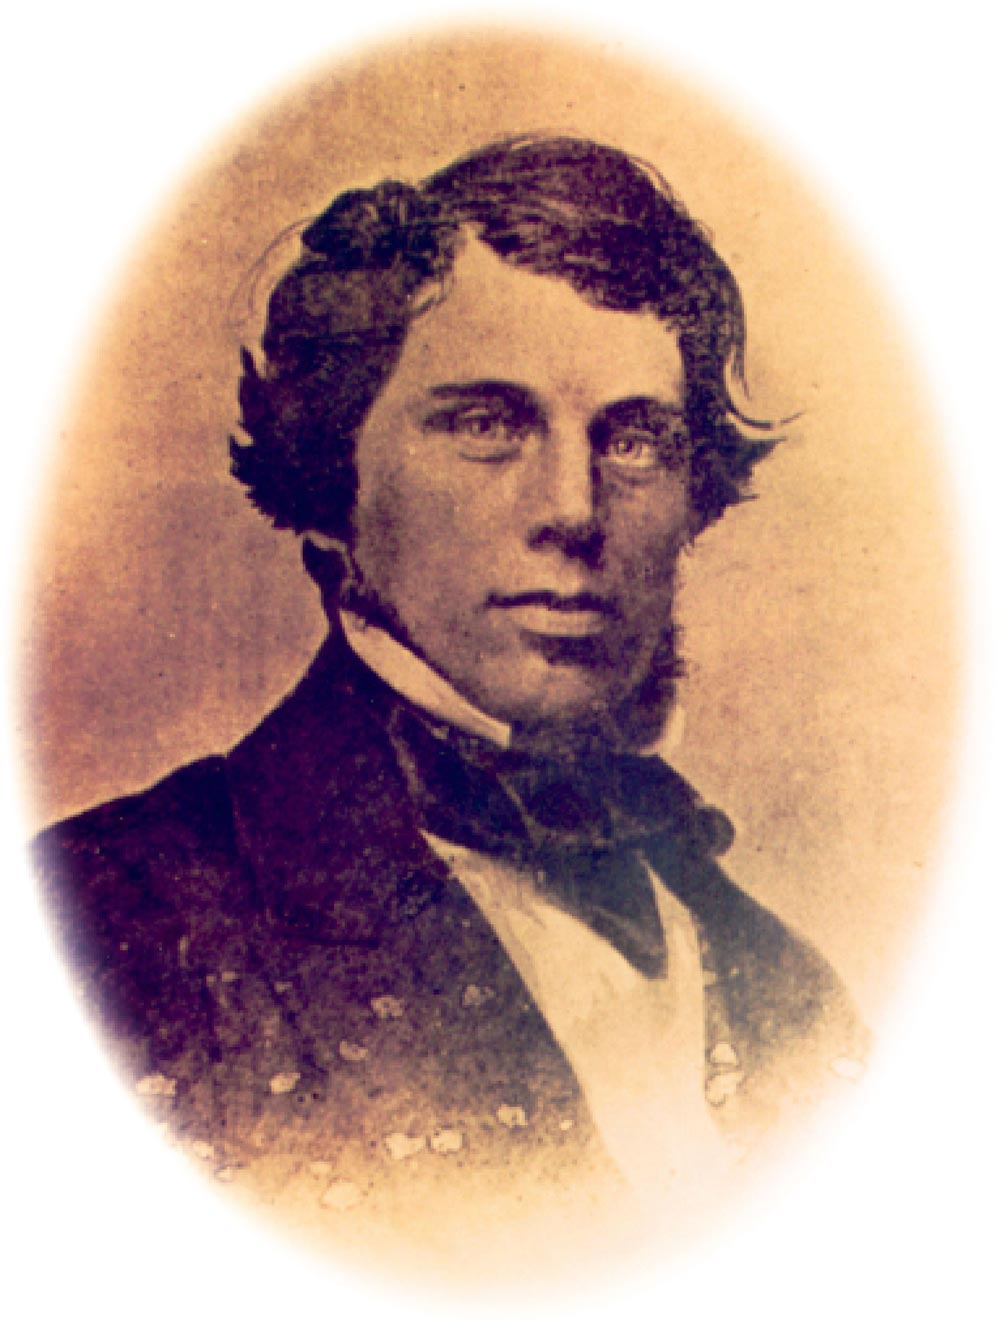 James McConnell, engineer, circa 1860